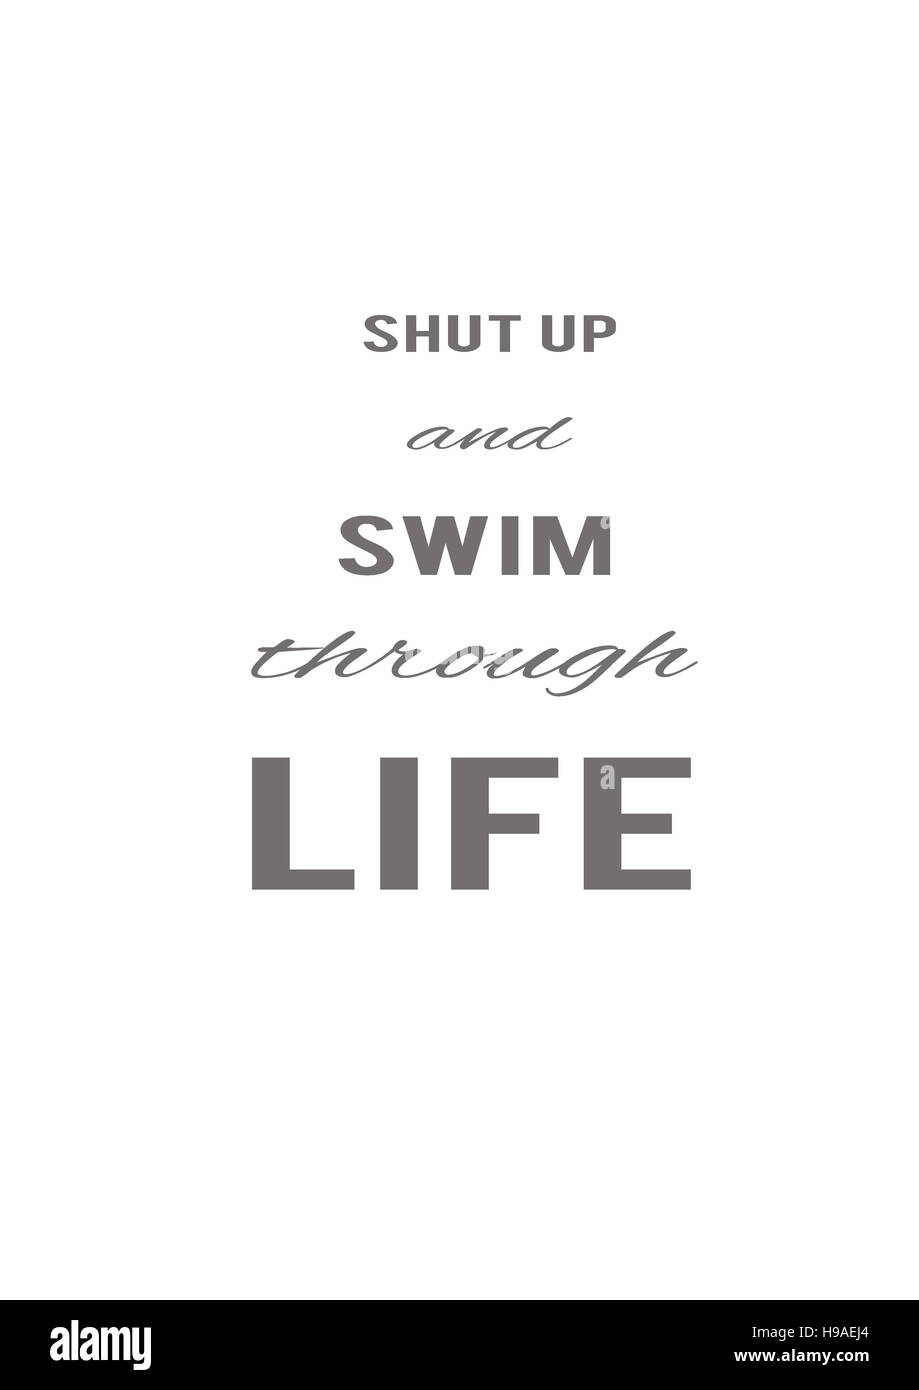 Shut Up And Swim Through Life, Backgrounds, Textures, Motivation, Poster,  Quote, White Background, White Letters, Illustration